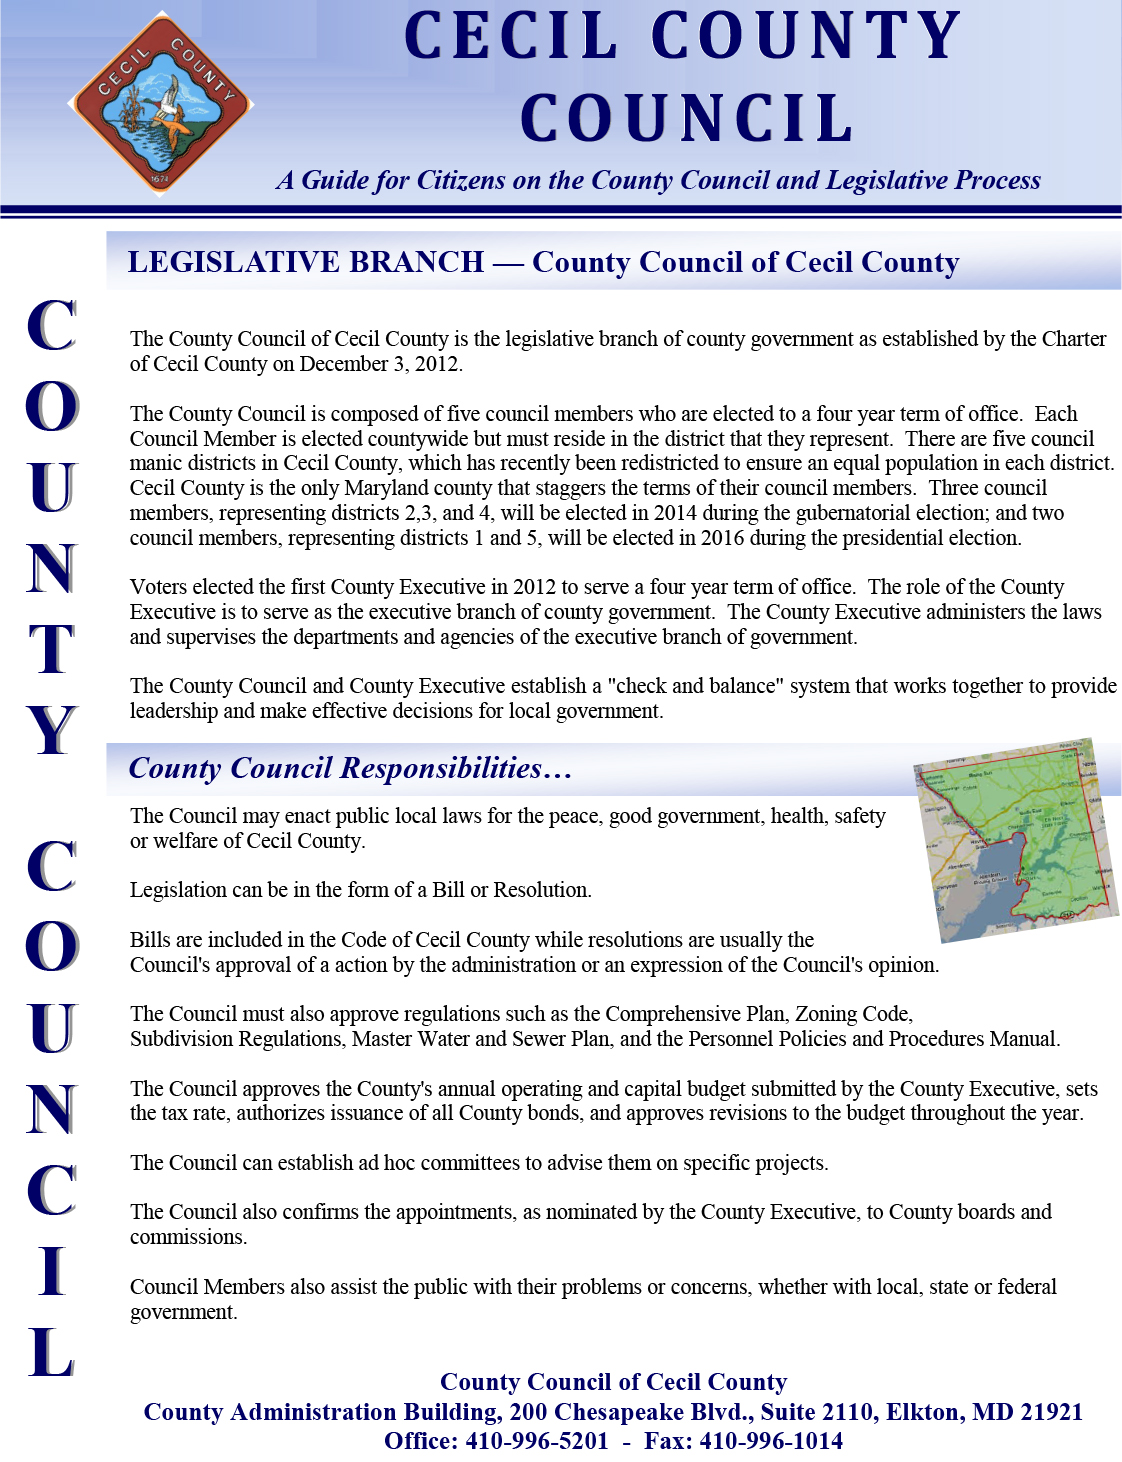 Responsibilities of the Cecil County Council